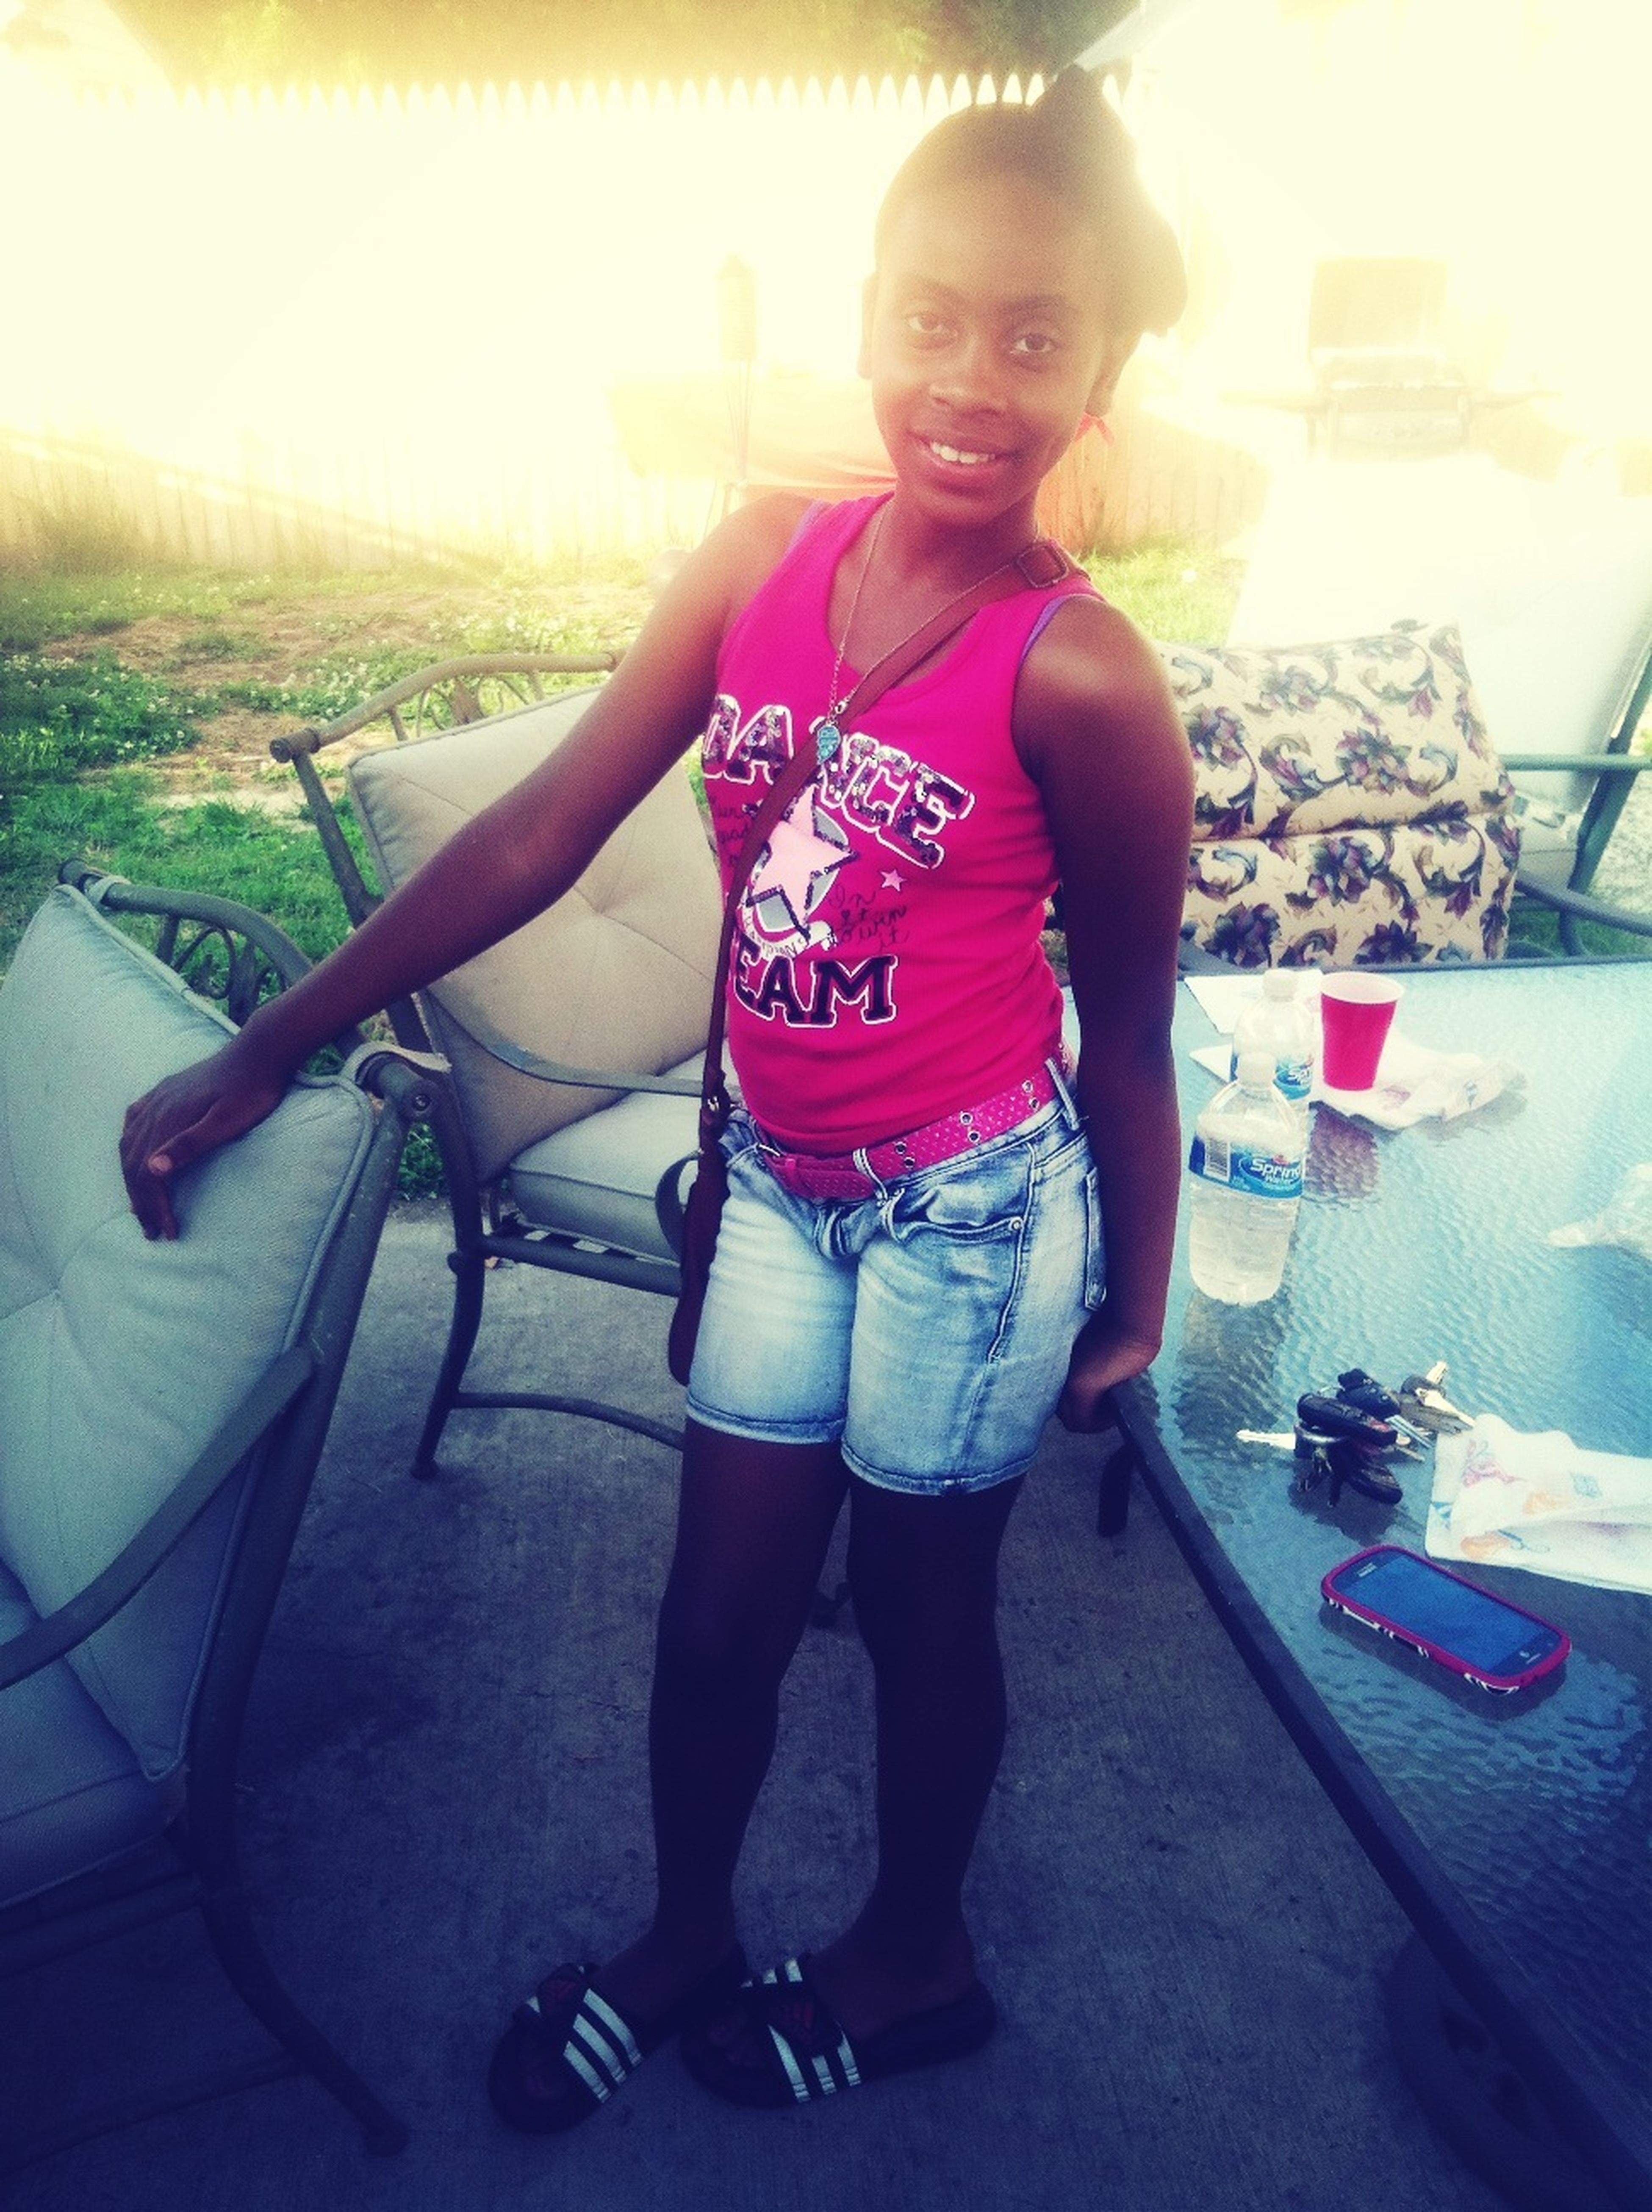 My Lil Cousin(;